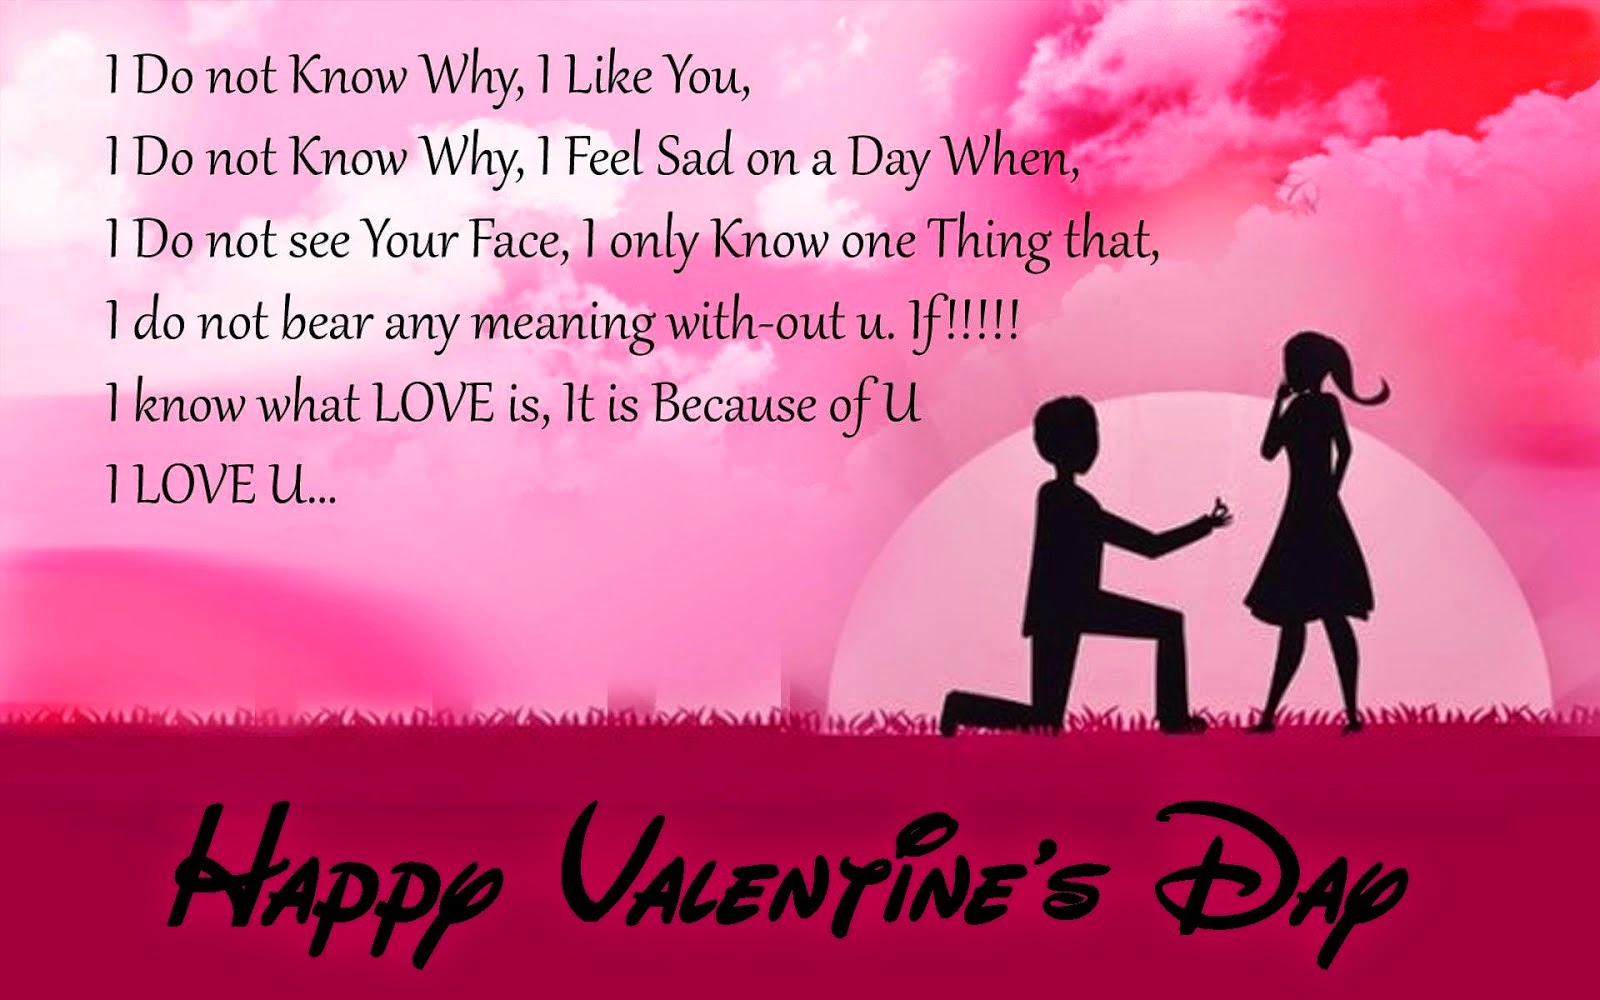 happy valentines day greetings - Happy Valentines Day Wishes